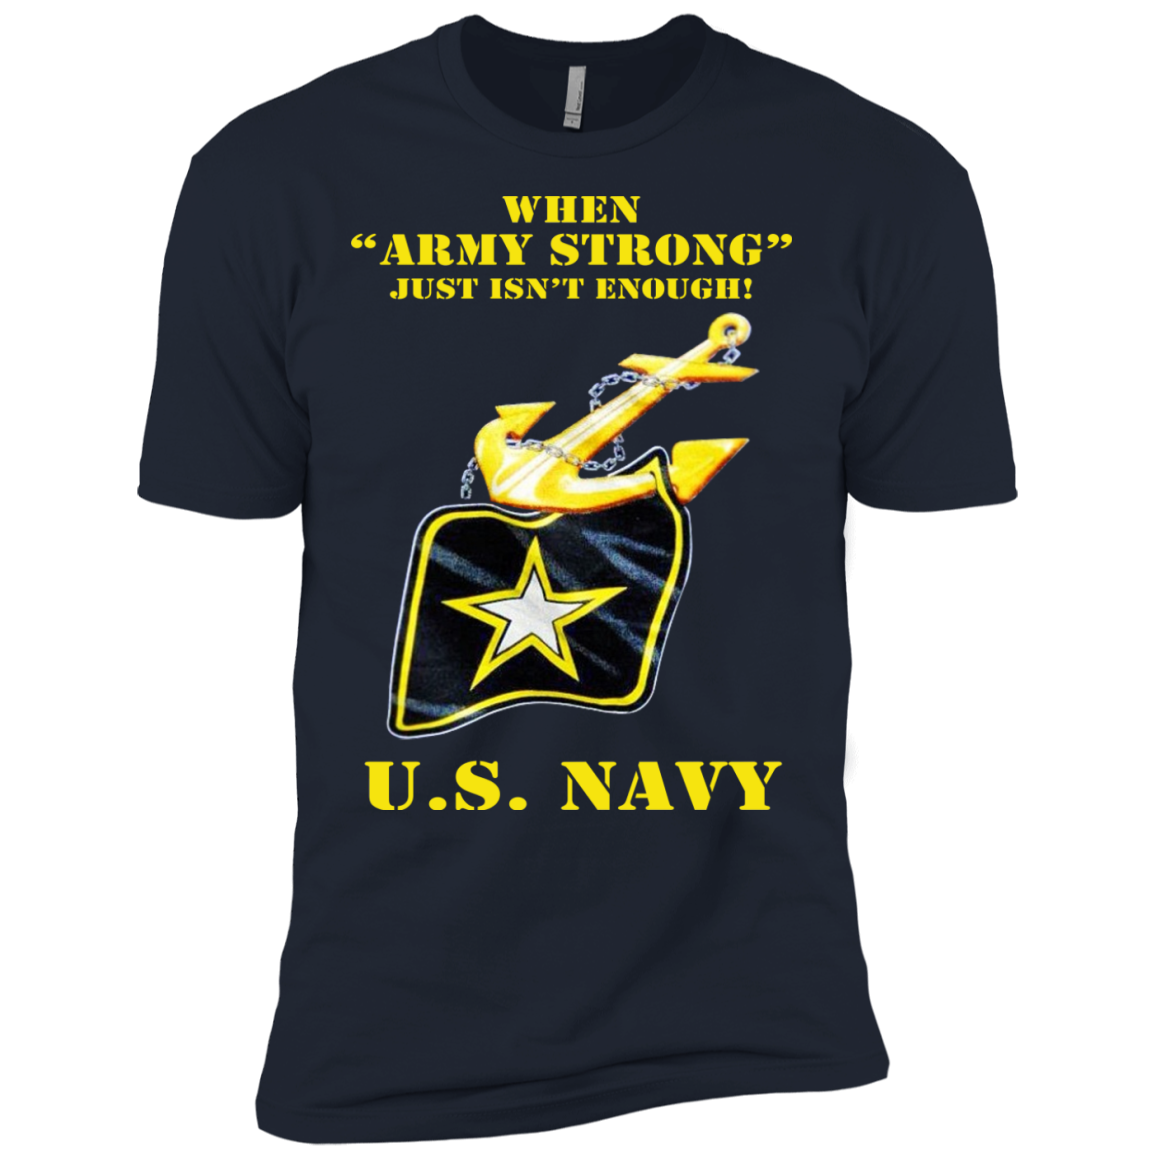 "When ""Army Strong"" U.S. NAVY"